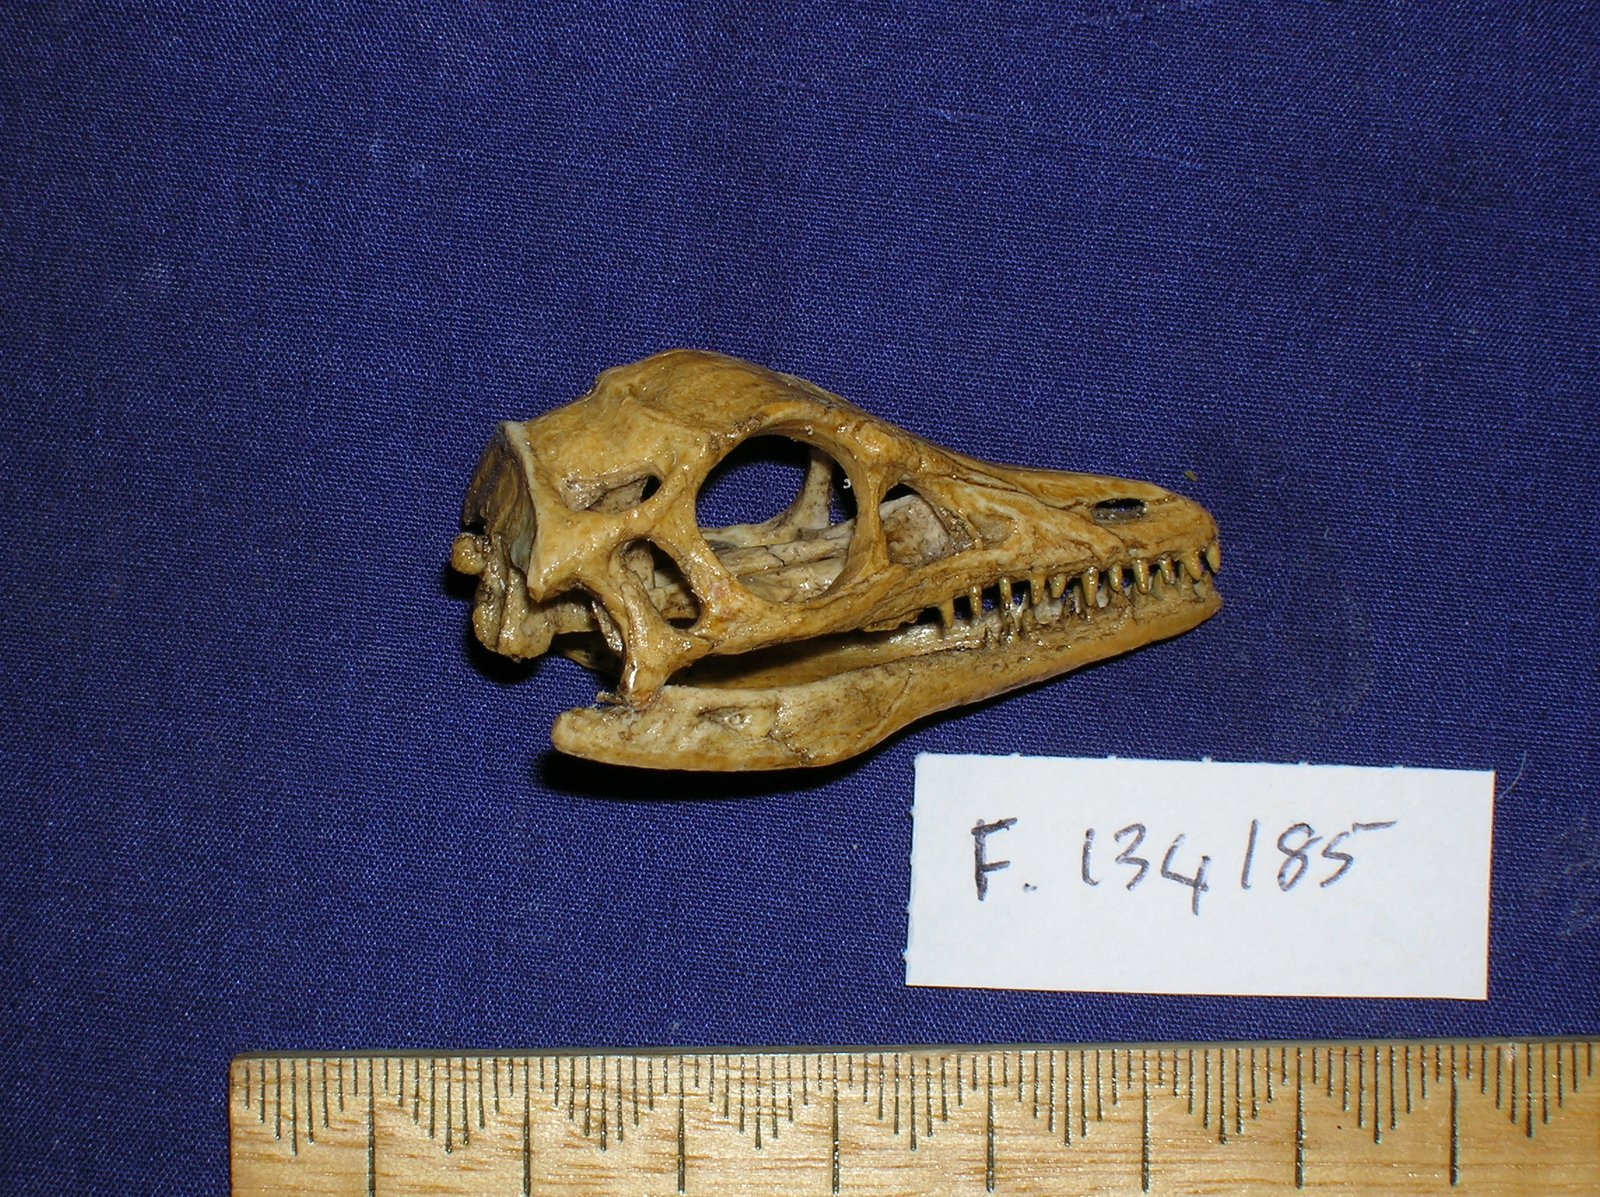 Archaeopteryx lithographica skull cast